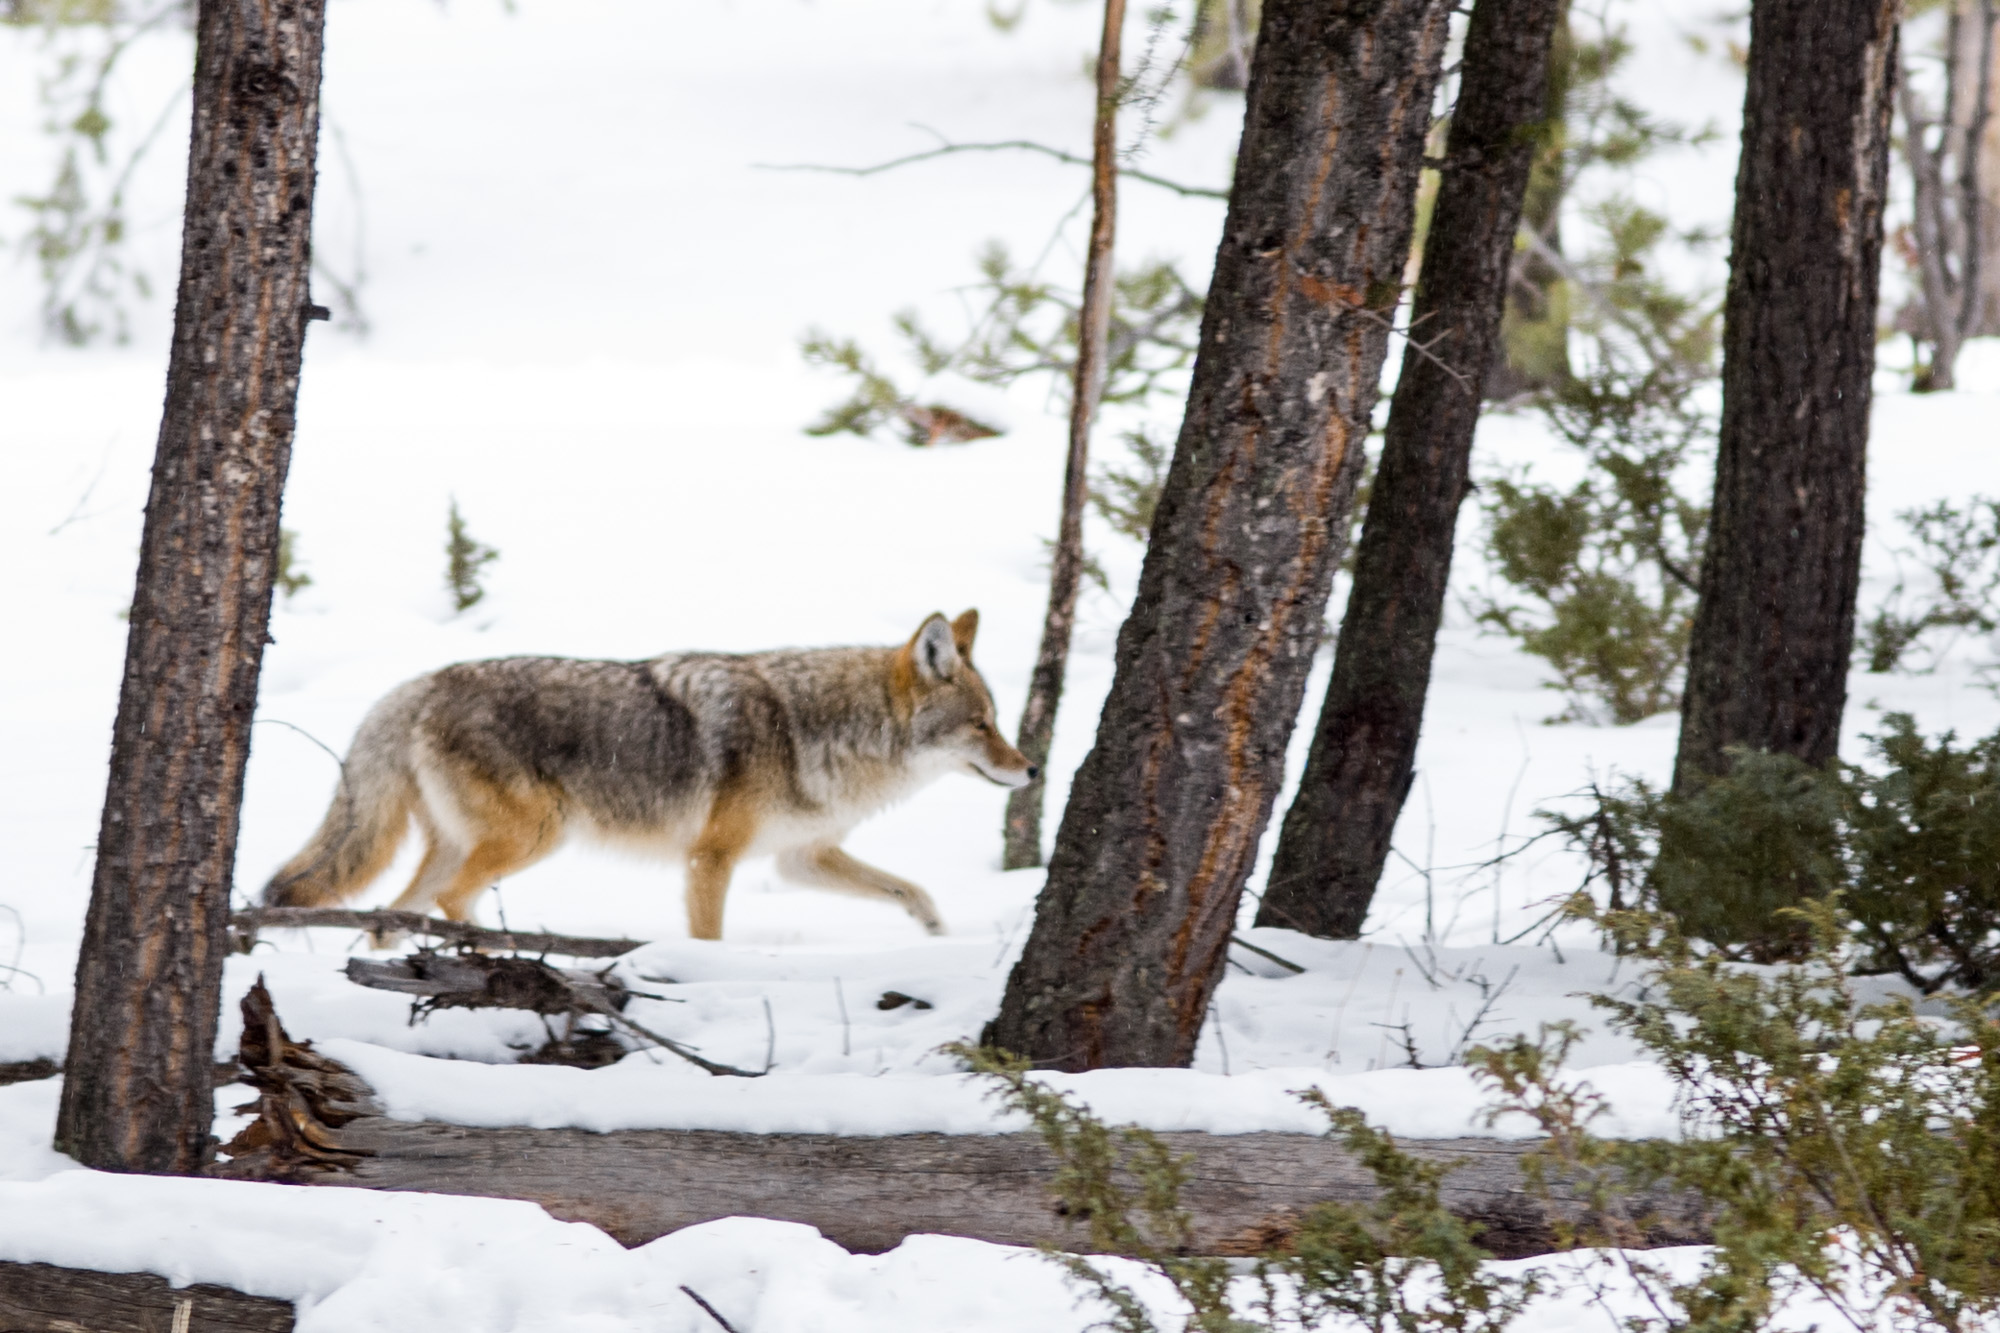 A coyote hunting for lunch